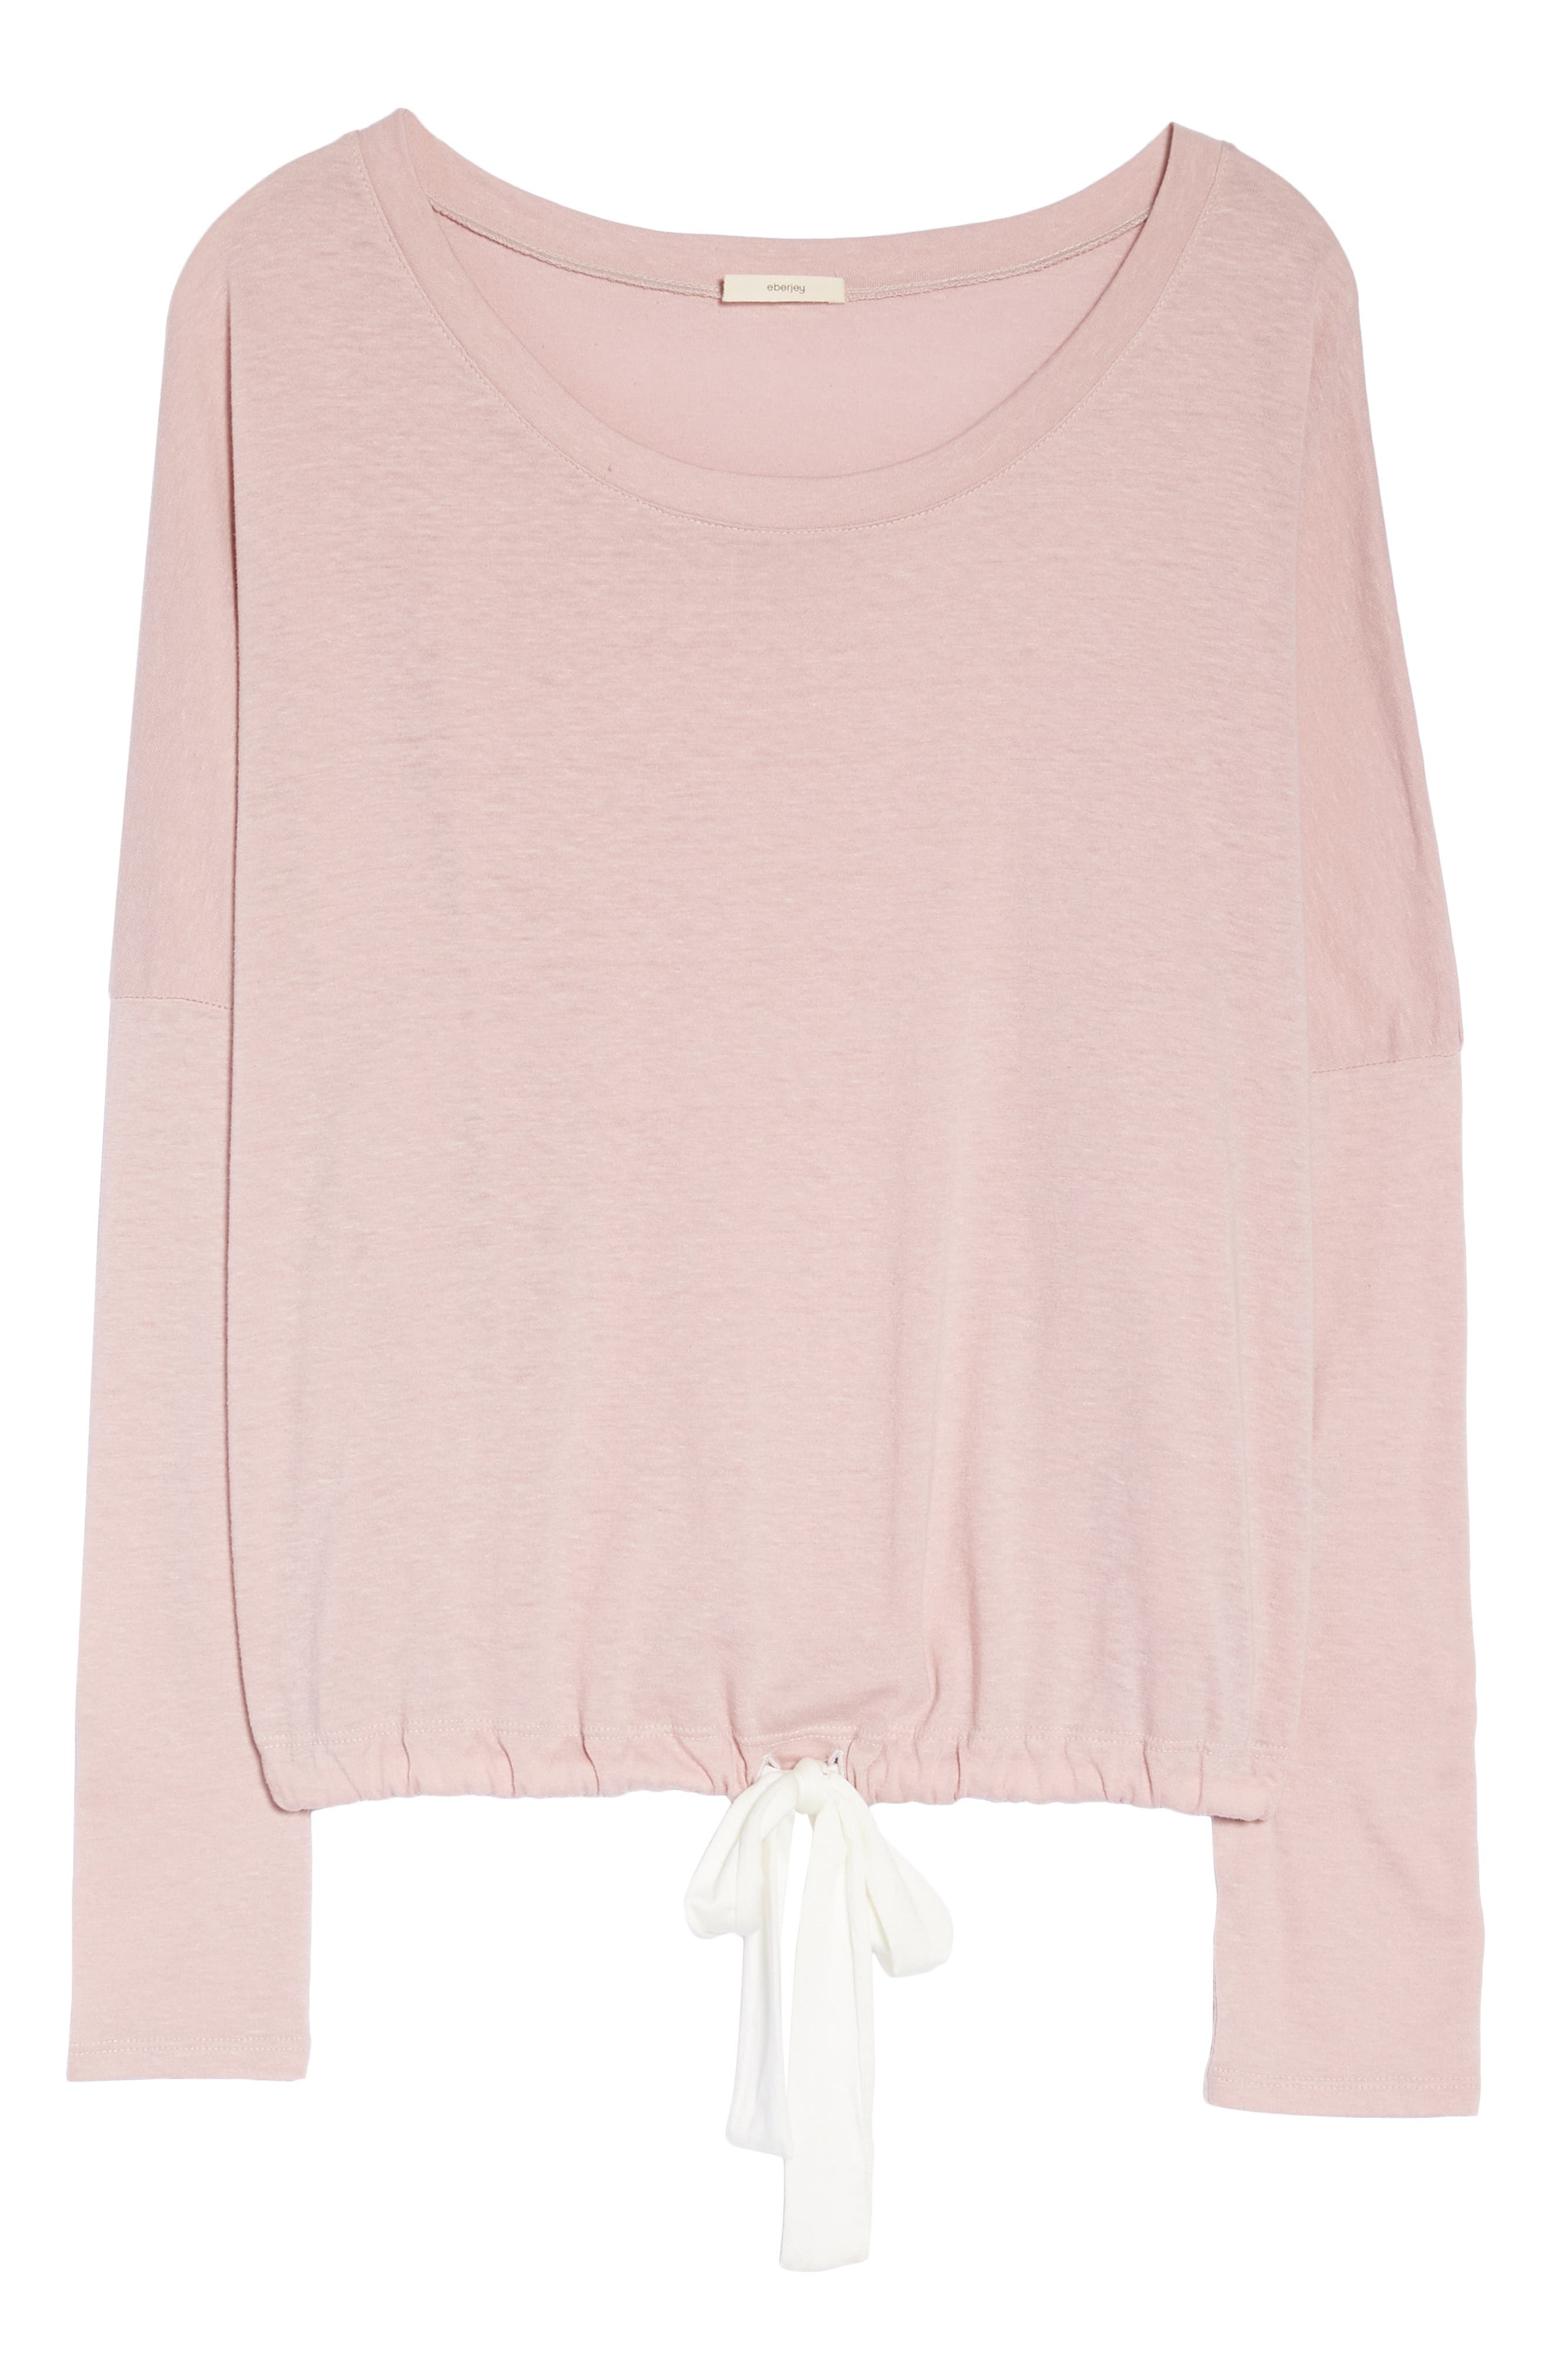 Heather Knit Slouchy Tee,                             Alternate thumbnail 6, color,                             CASHMERE ROSE